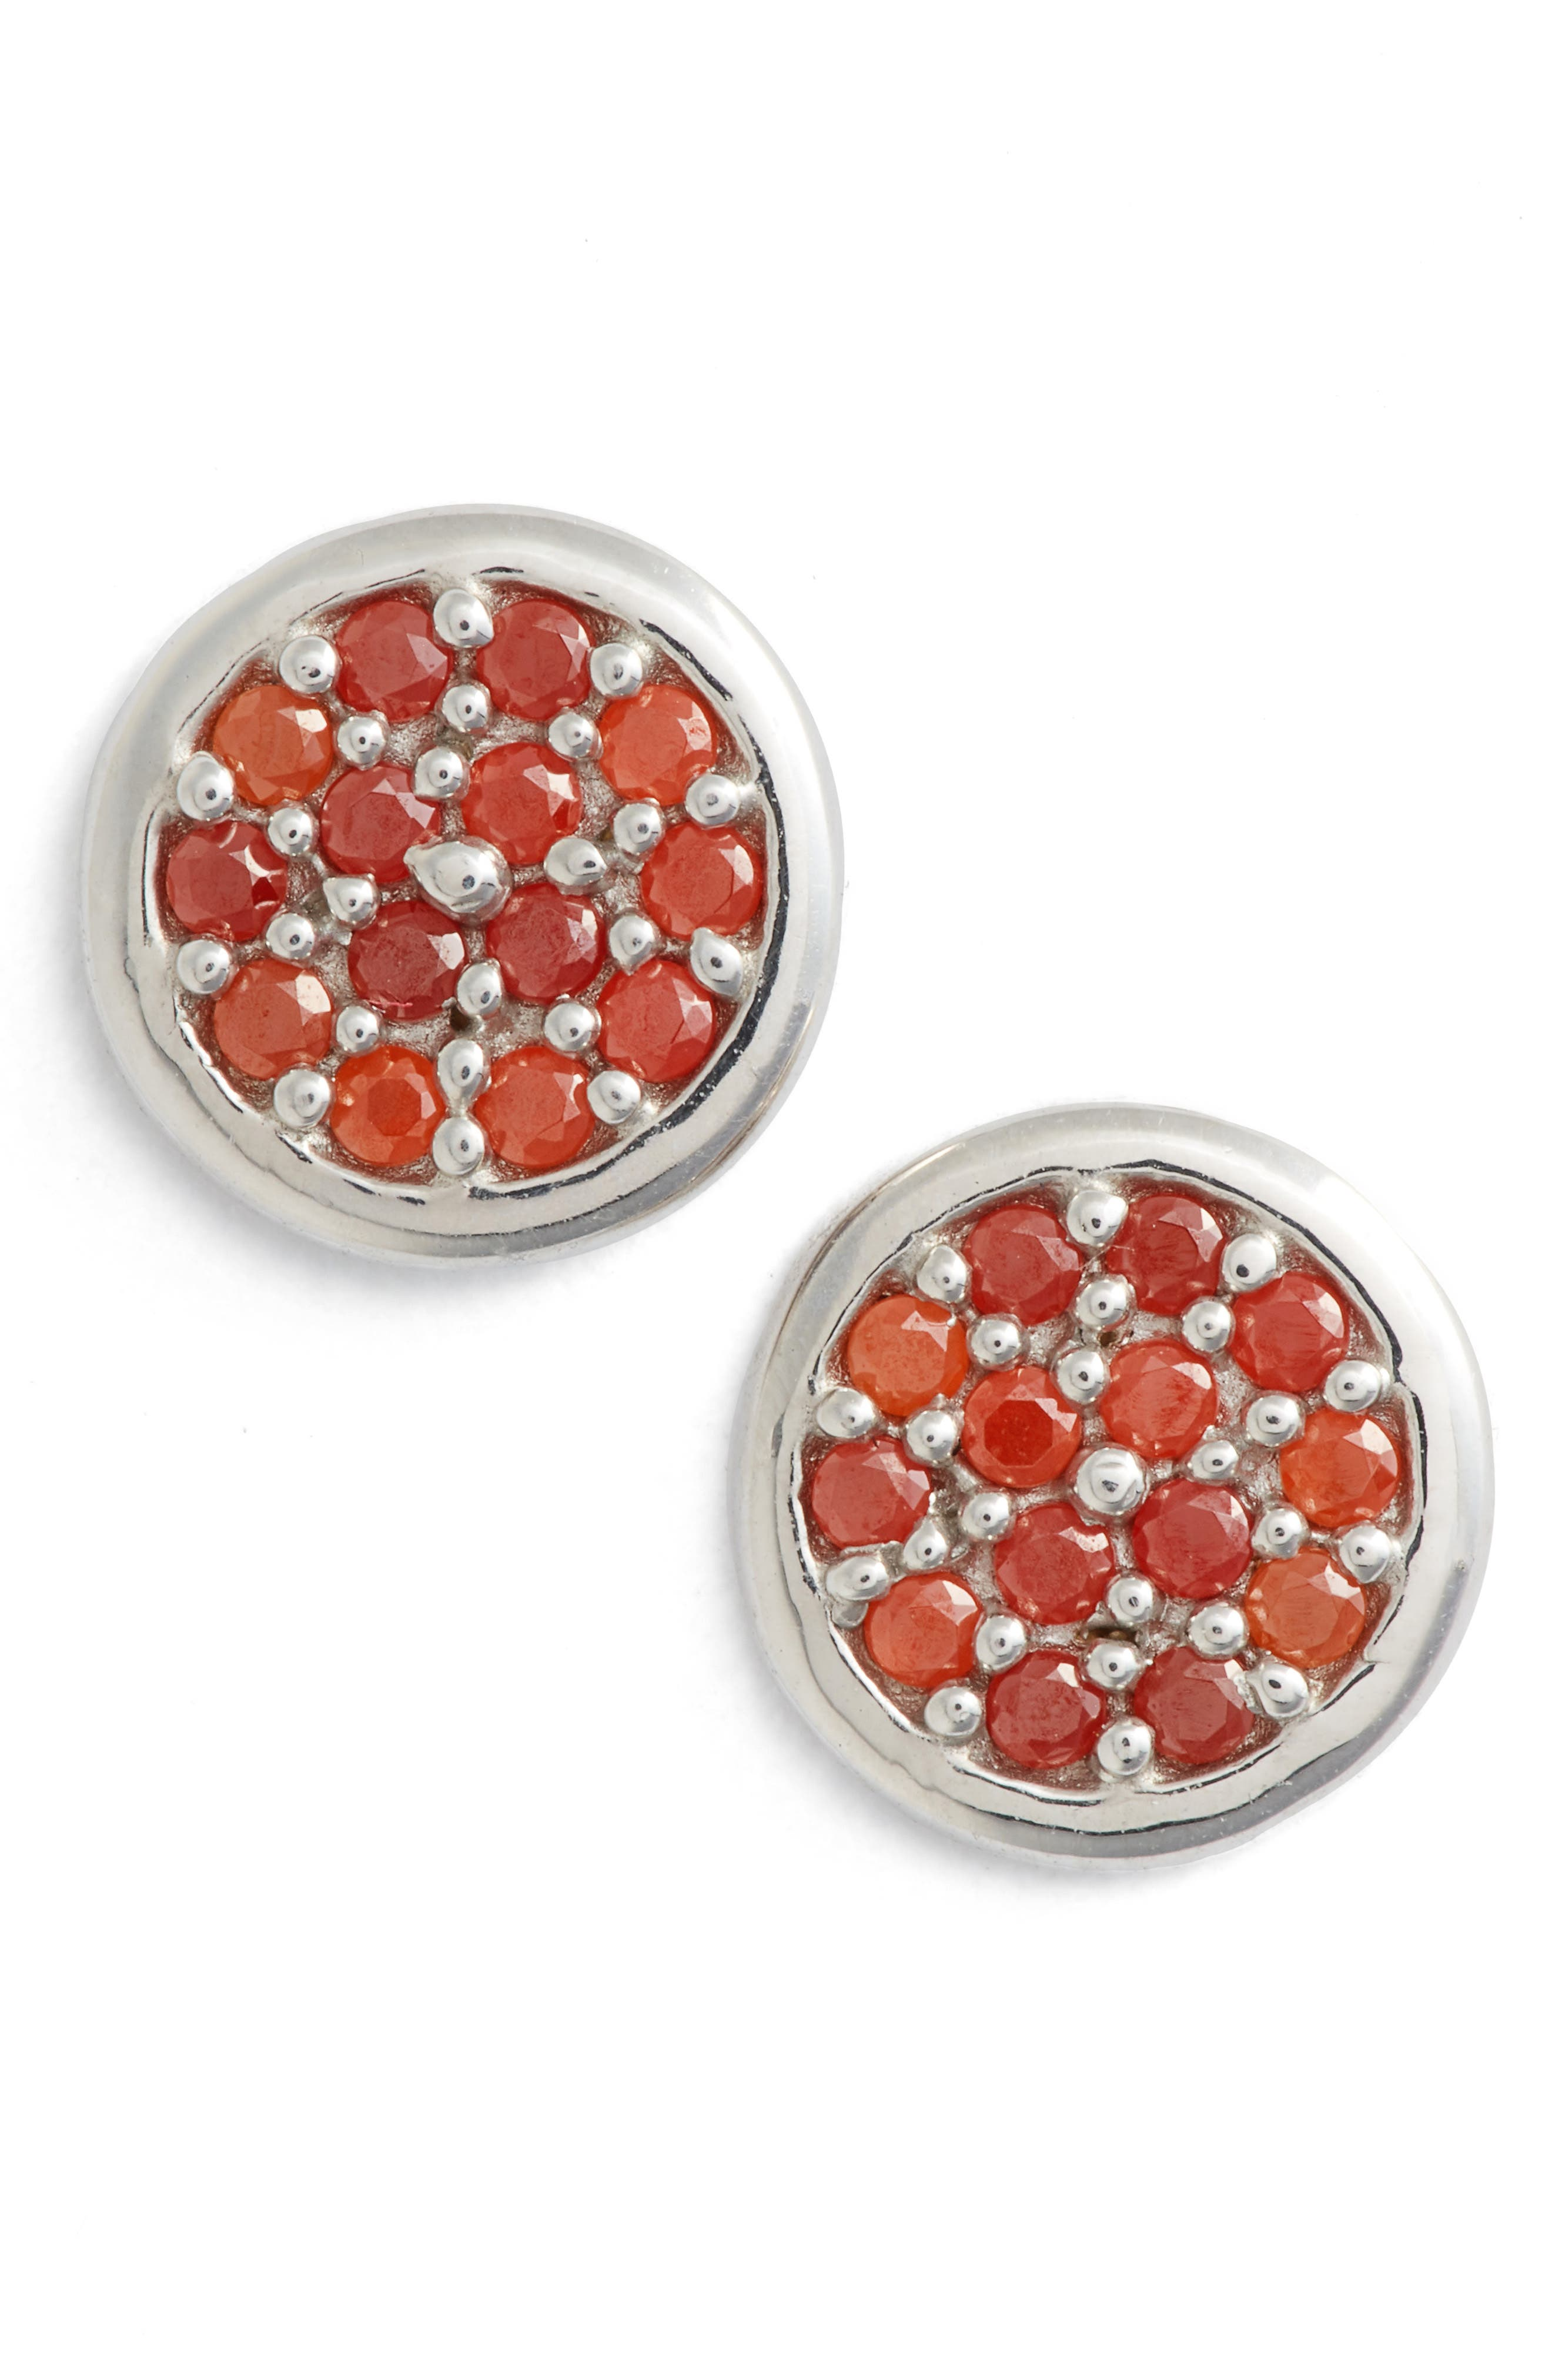 Cubic Zirconia Stud Earrings,                             Main thumbnail 1, color,                             CORAL/ SILVER